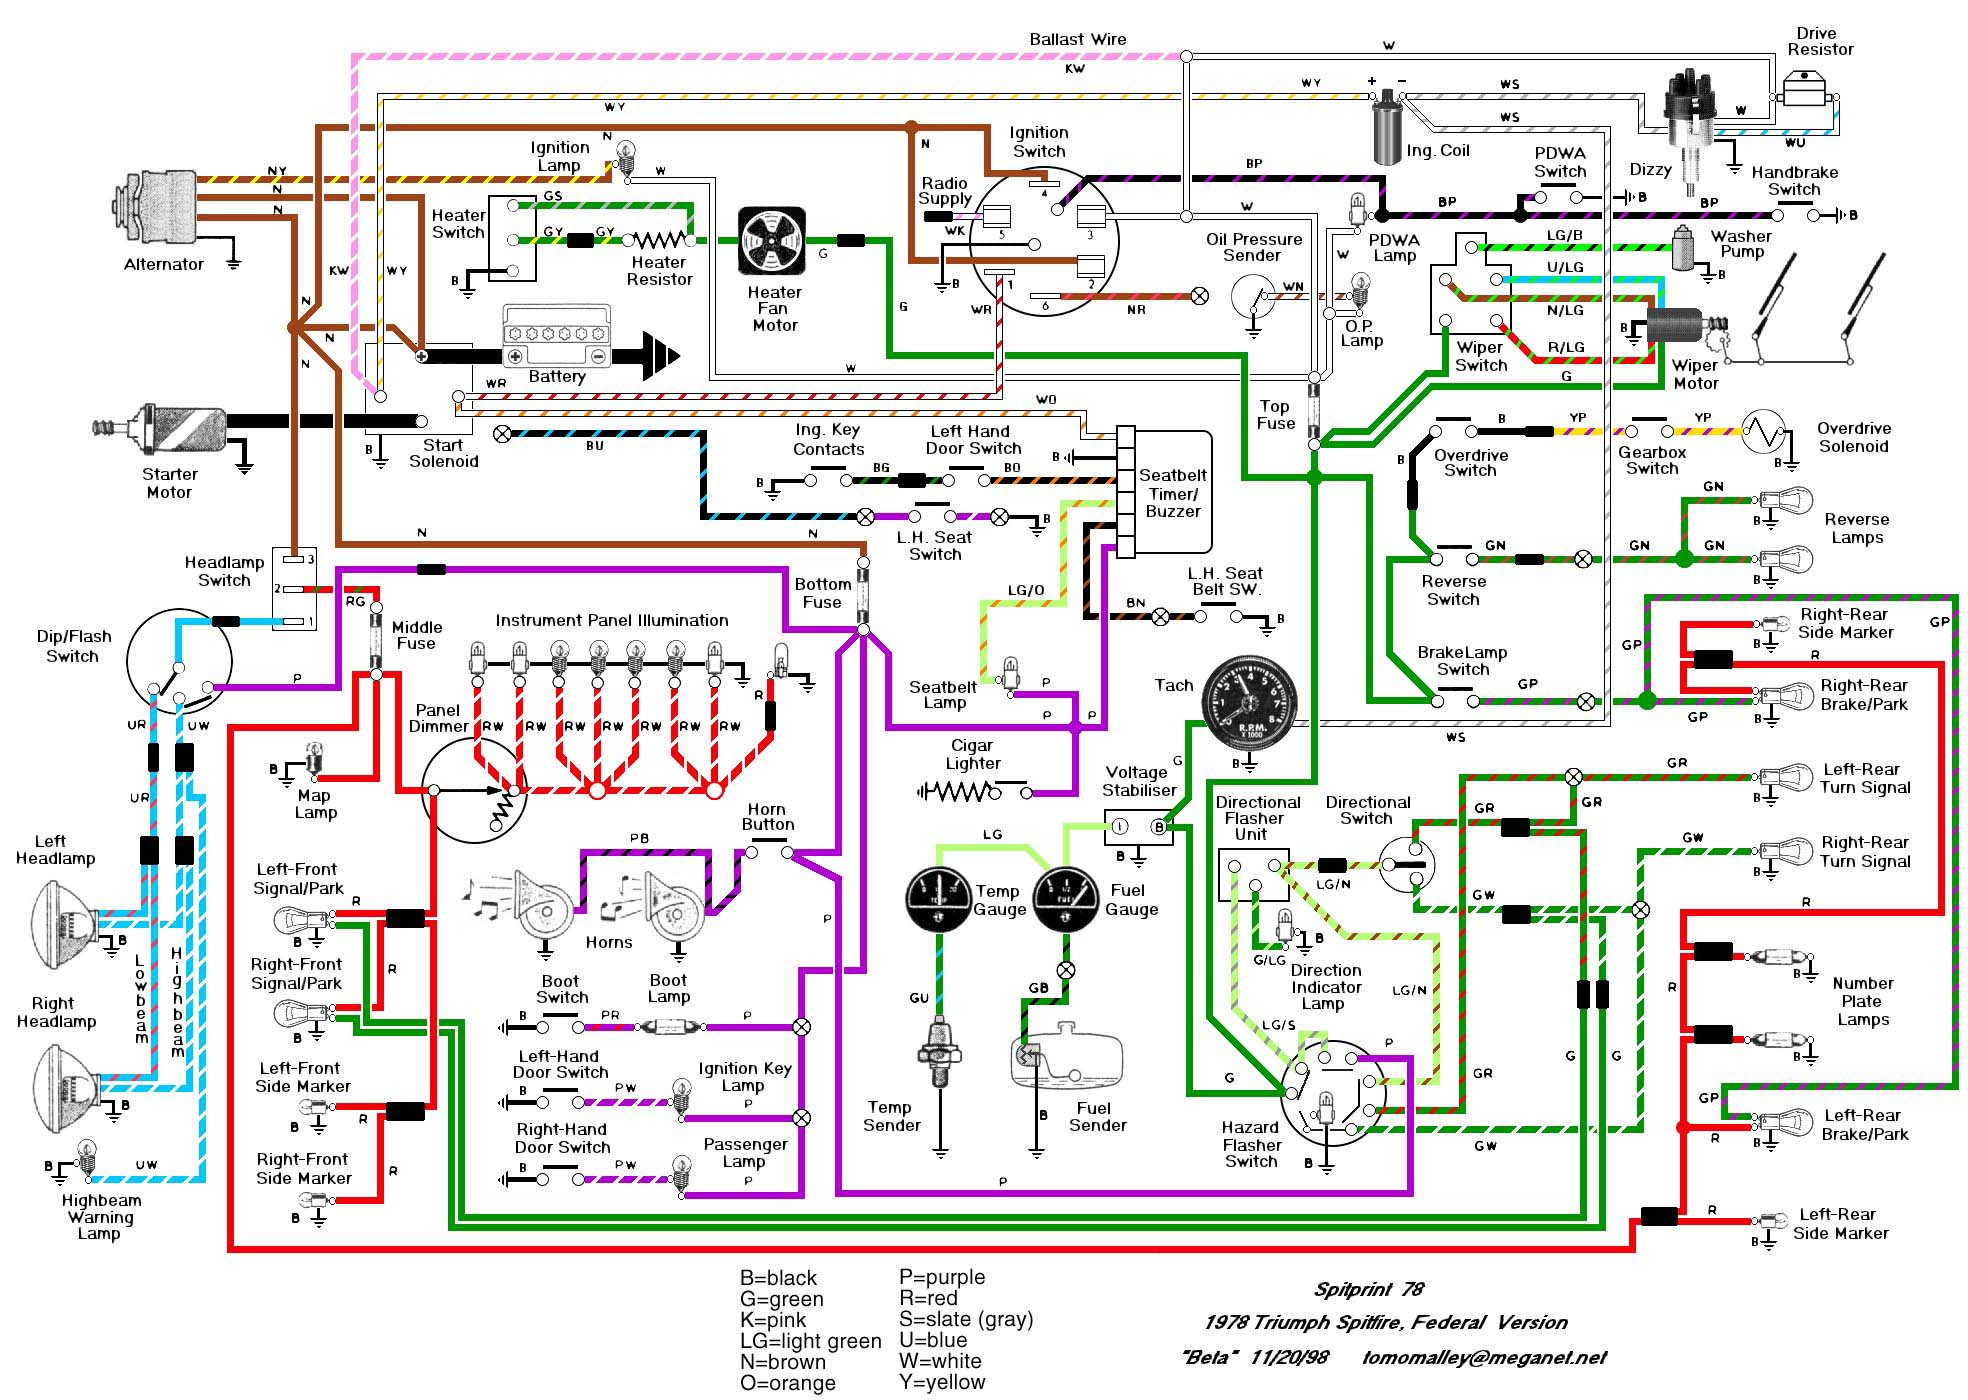 2001 Dodge Ram Stereo Wiring Diagram besides 2000 Durango Heater Box Diagram in addition Wj liczniki in addition Wiring Diagrams And Pinouts also Volvo Xc90 2005 Fuse Diagram Get Free Image. on dodge dakota wiring diagrams